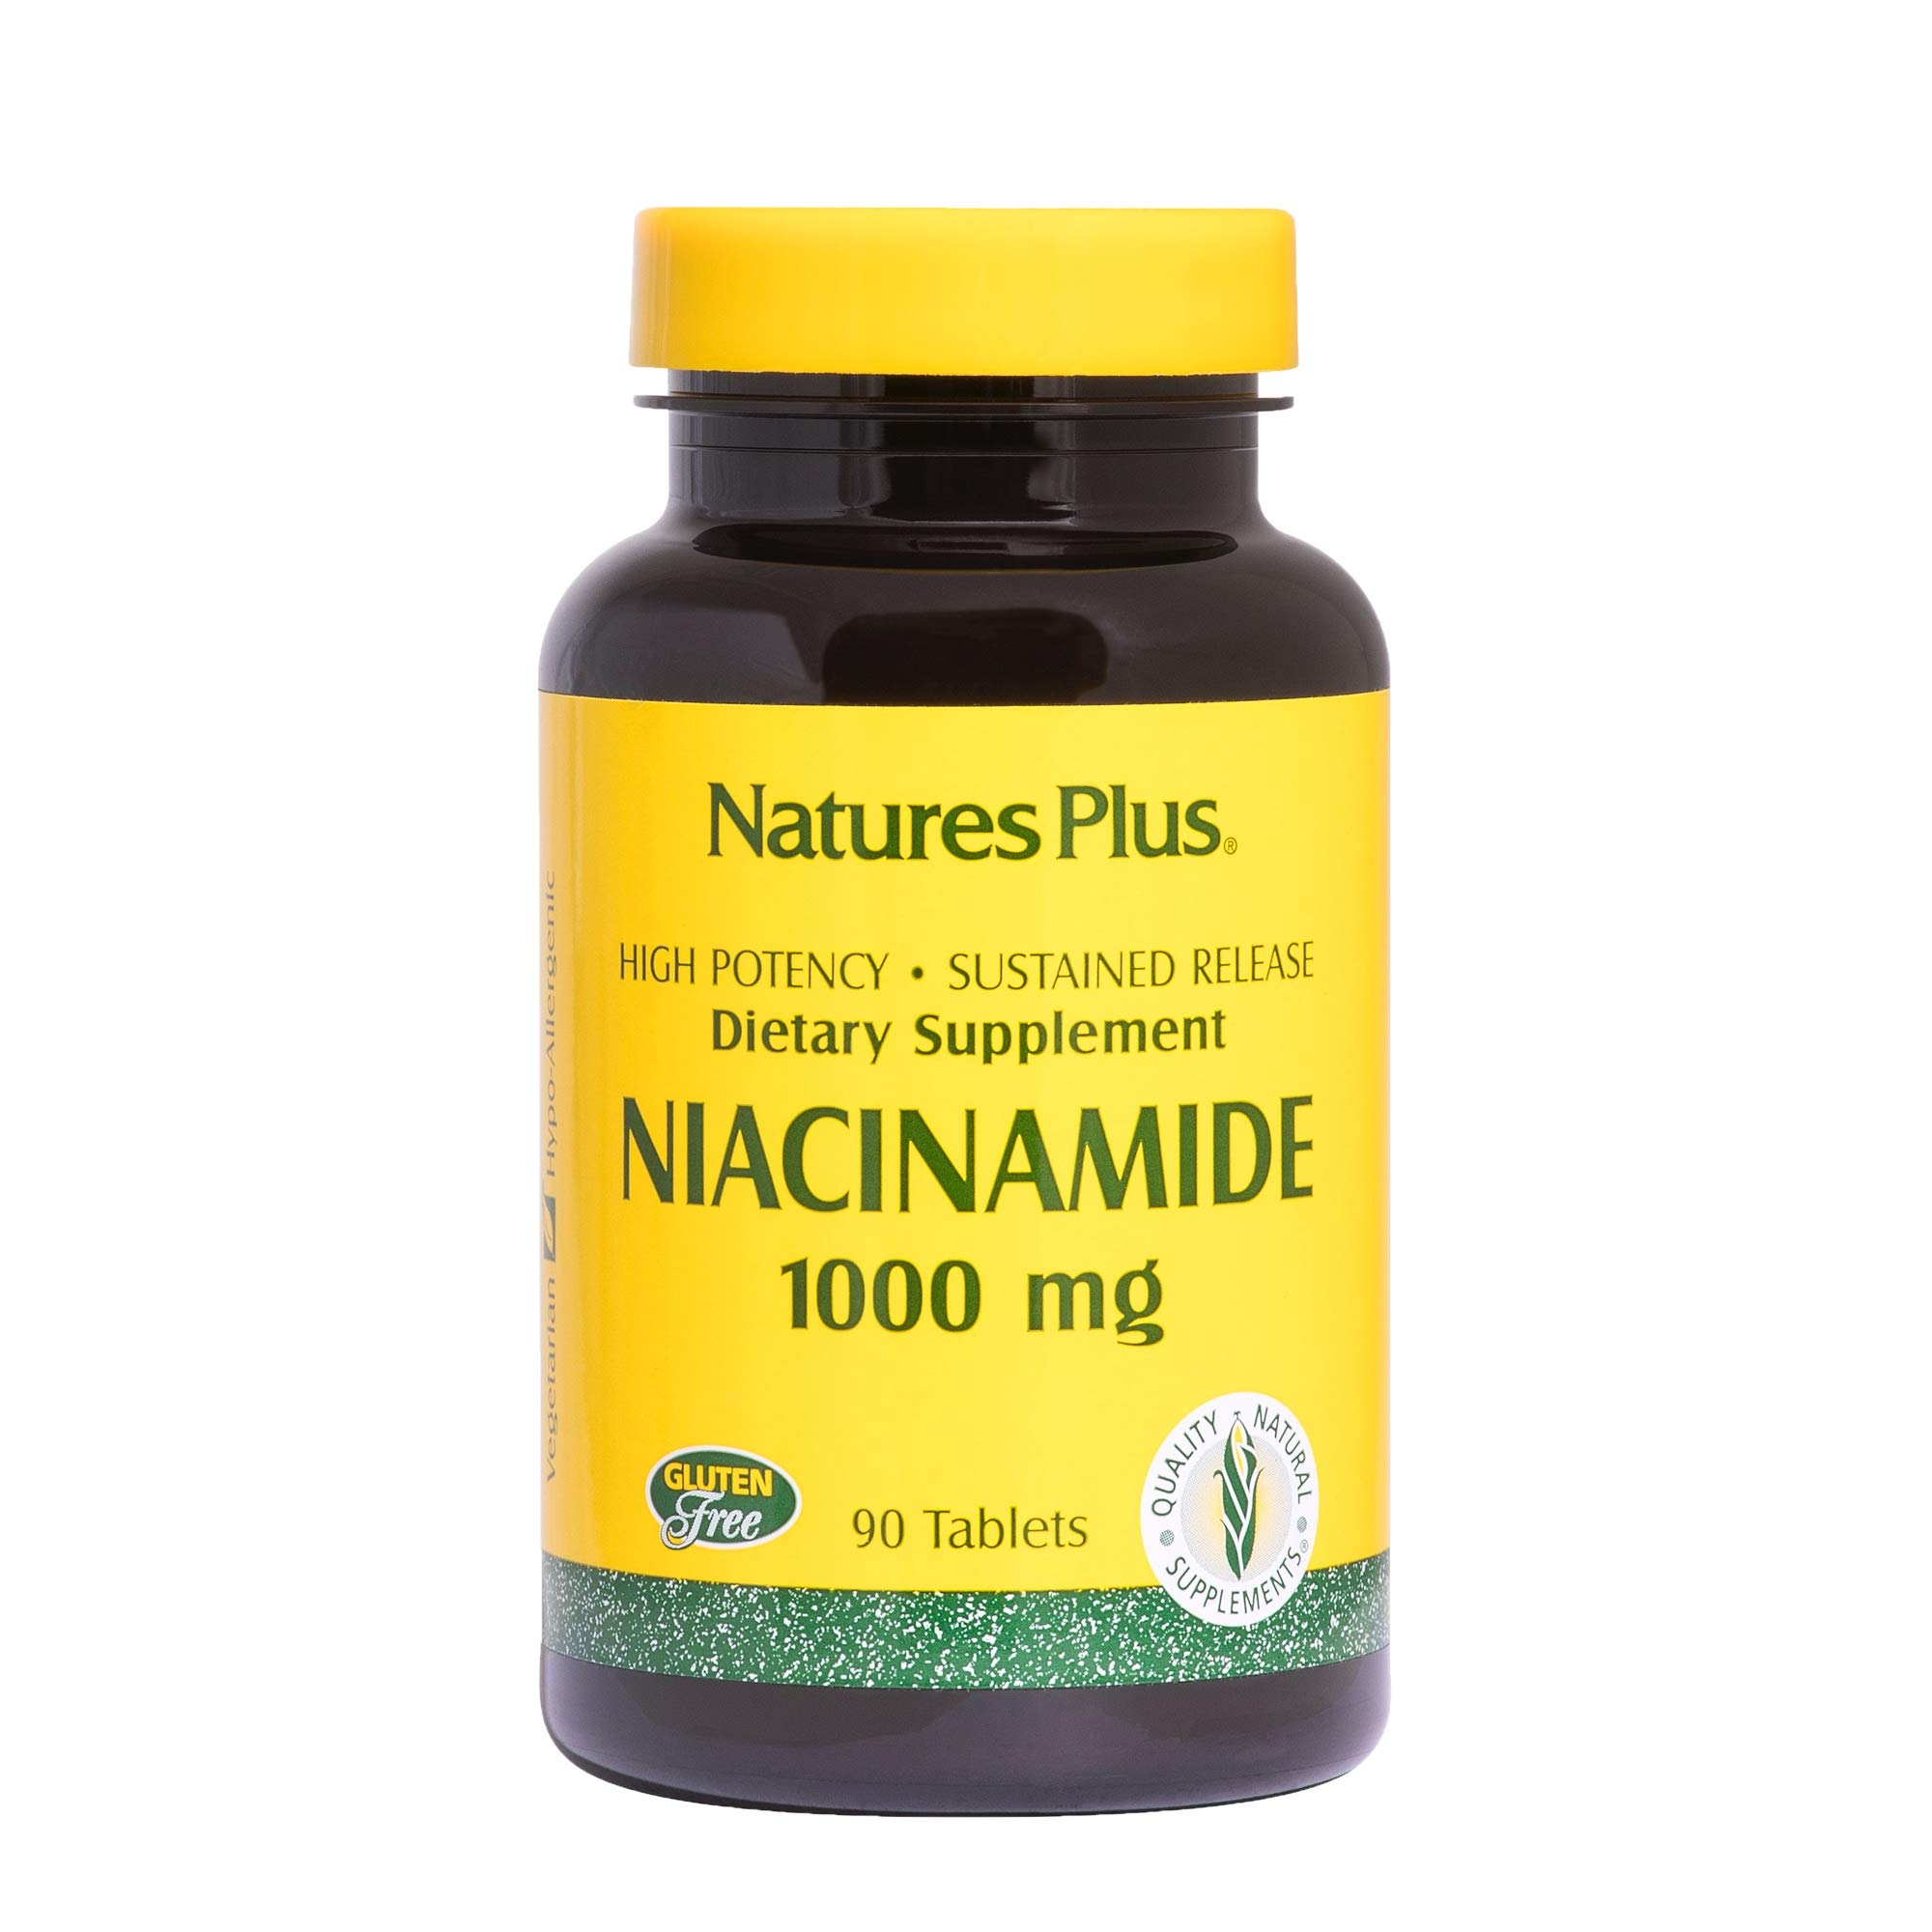 NaturesPlus Niacinamide, Sustained Release - 1000 mg, 90 Vegetarian Tablets - High Potency Vitamin B3 Supplement, Promotes Lower Blood Pressure, Joint Pain Relief - Gluten-Free - 90 Servings